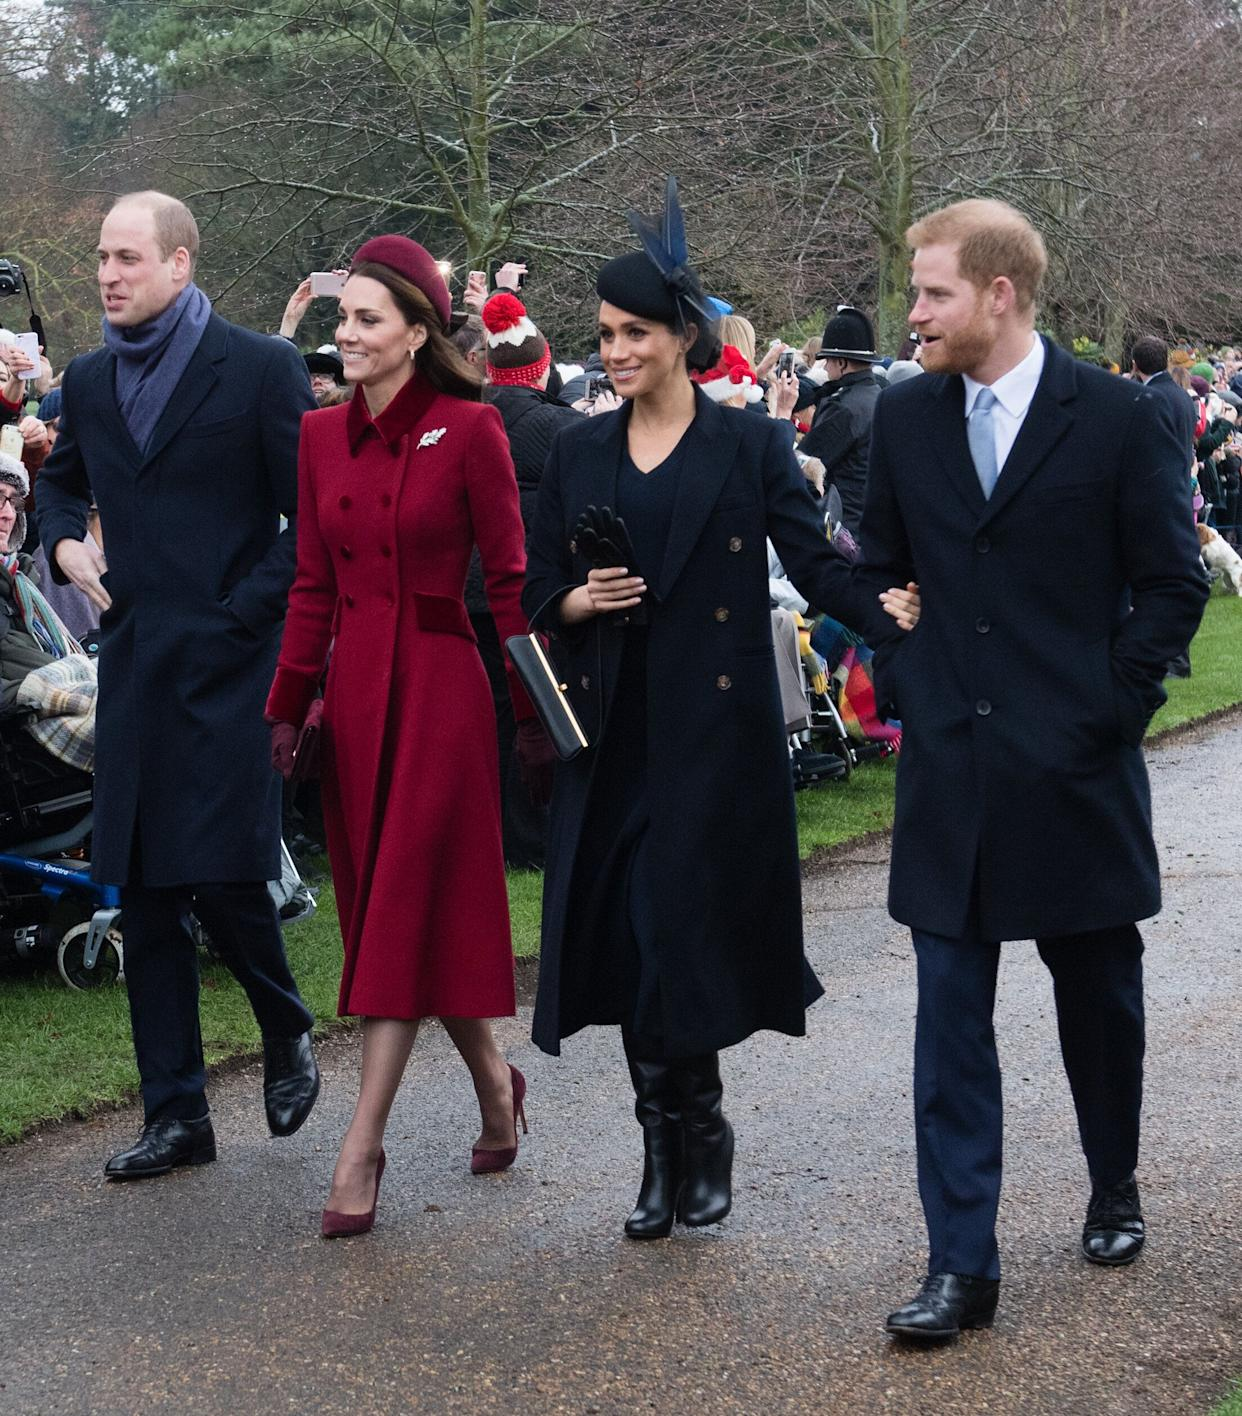 William, Kate, Meghan and Harry attend church service at the Church of St. Mary Magdalene on the Sandringham estate on Dec. 25, 2018, in King's Lynn, England.